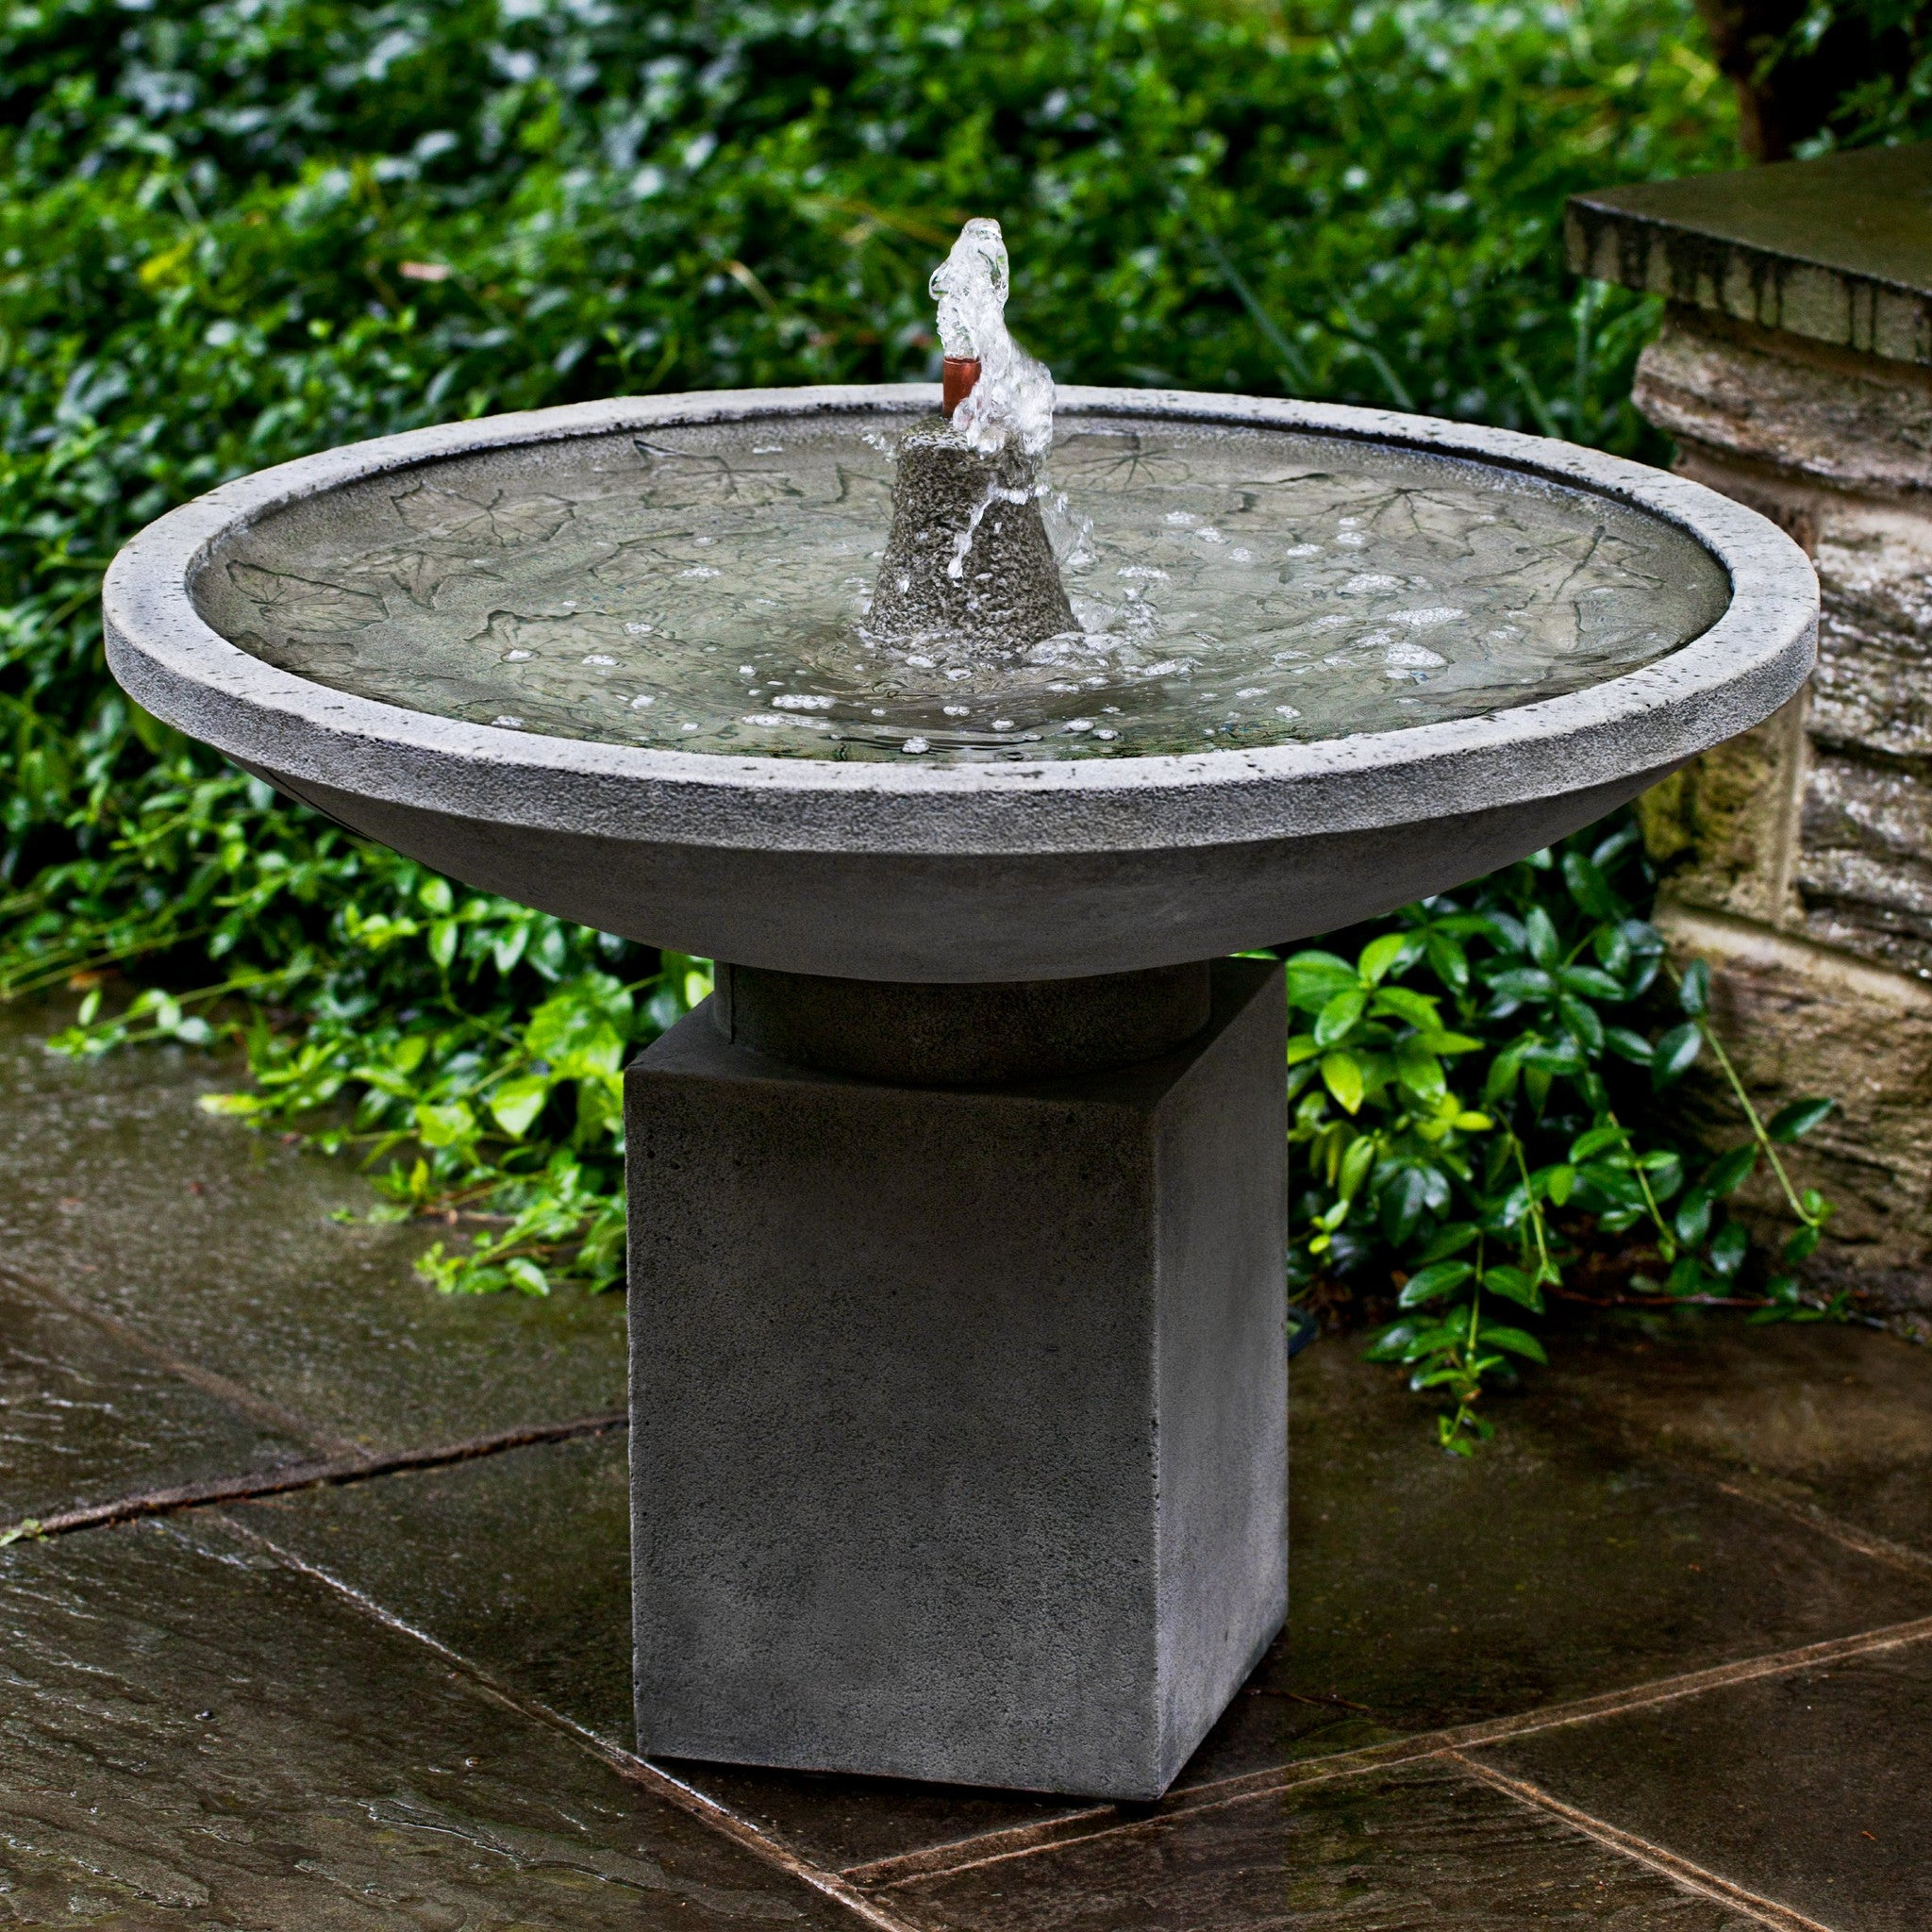 solar fountains hayneedle - 736×736